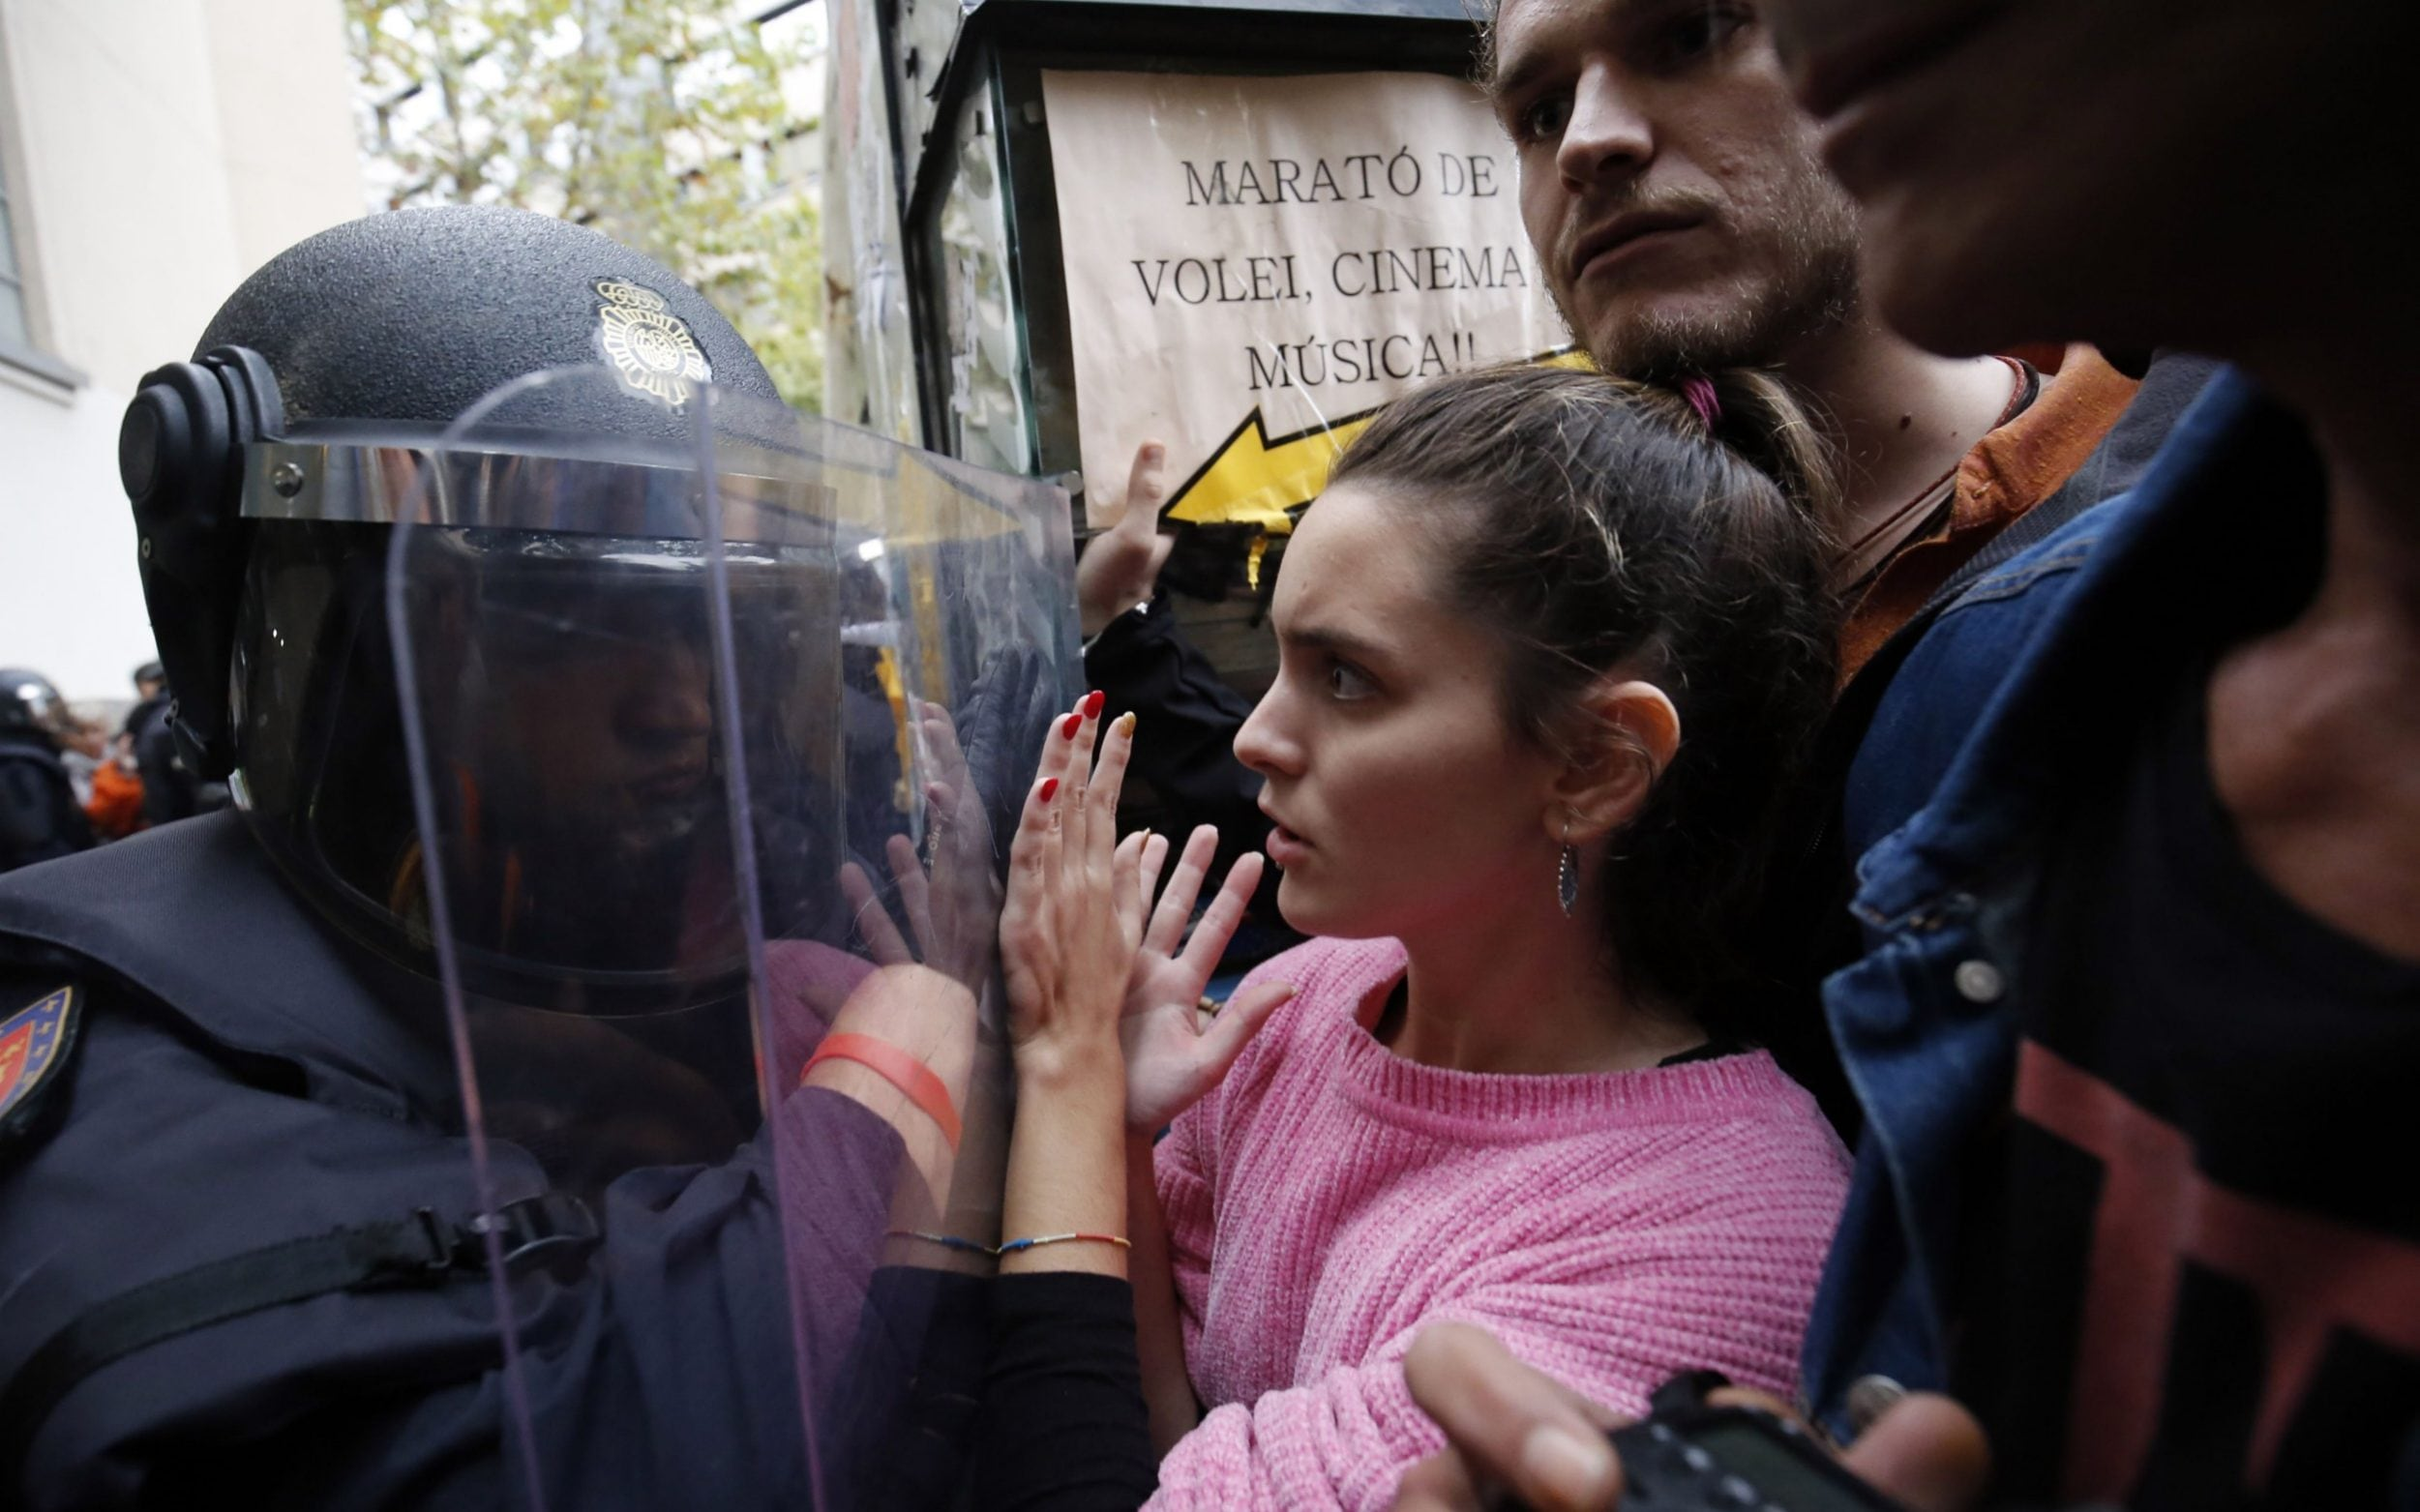 Spanish police push people with a shield outside a polling station in Barcelona